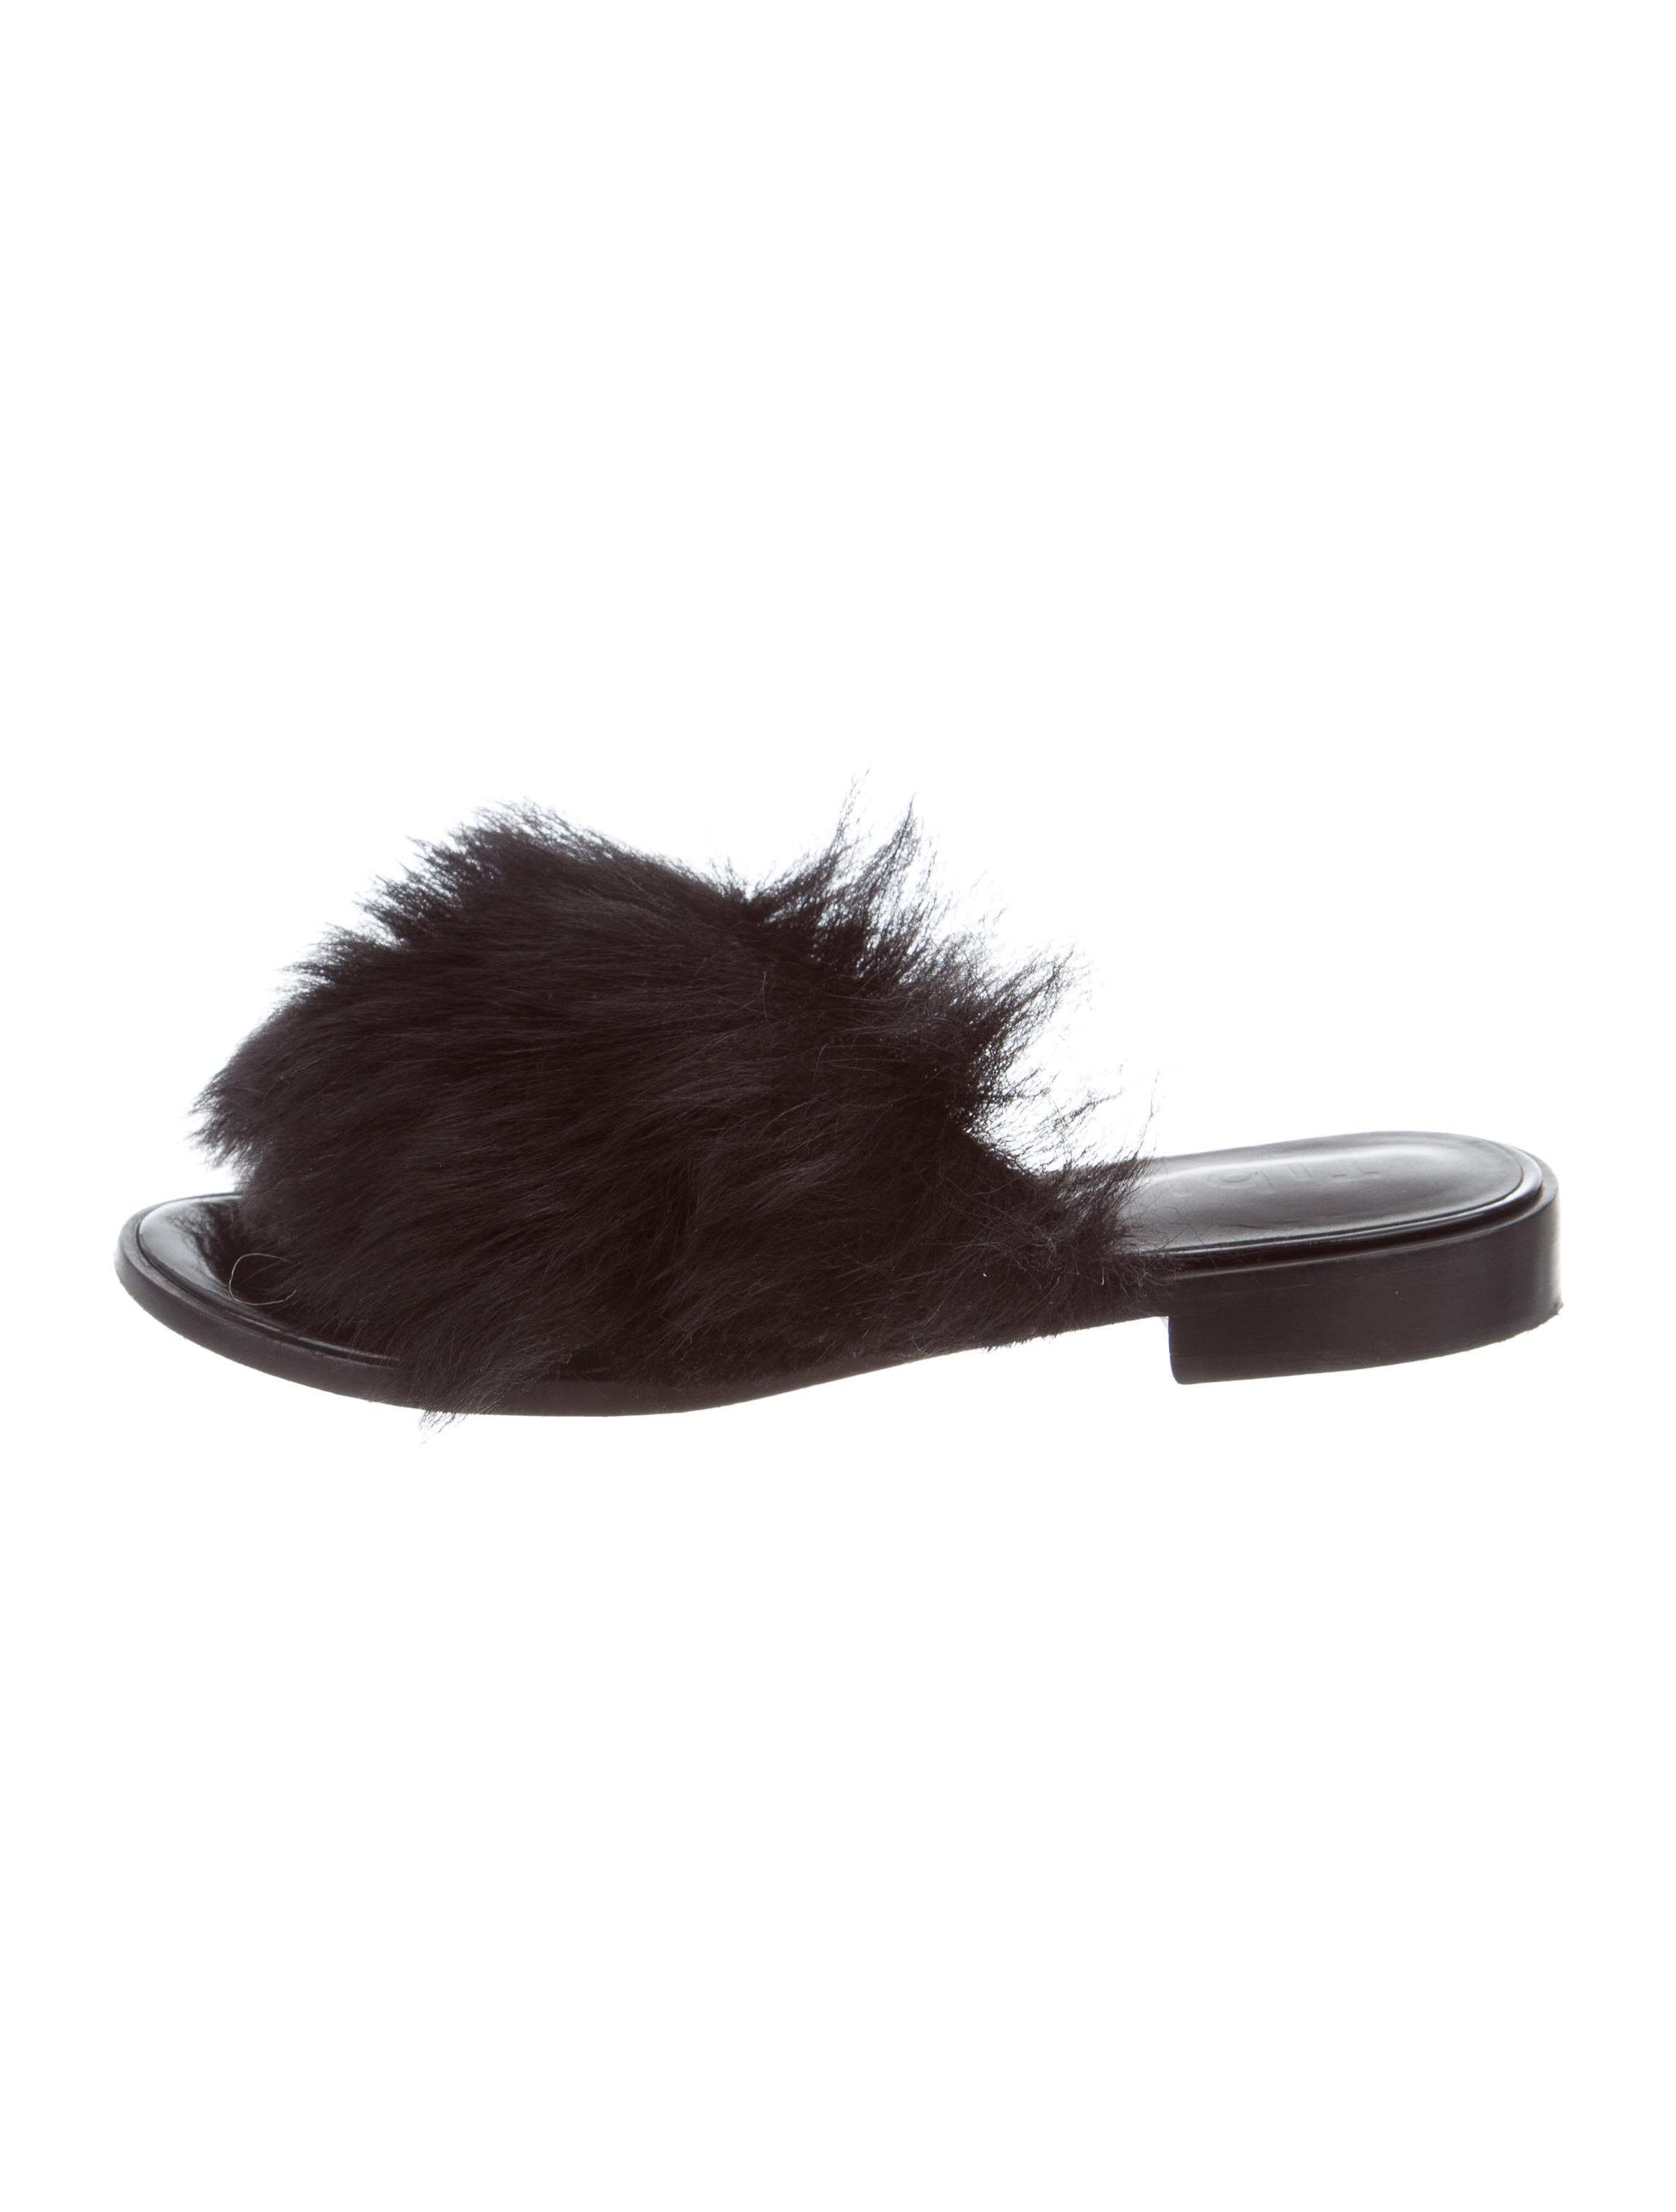 Tibi Shearling Slide Sandals latest for sale buy cheap buy good selling cheap price FUOpL68bJN